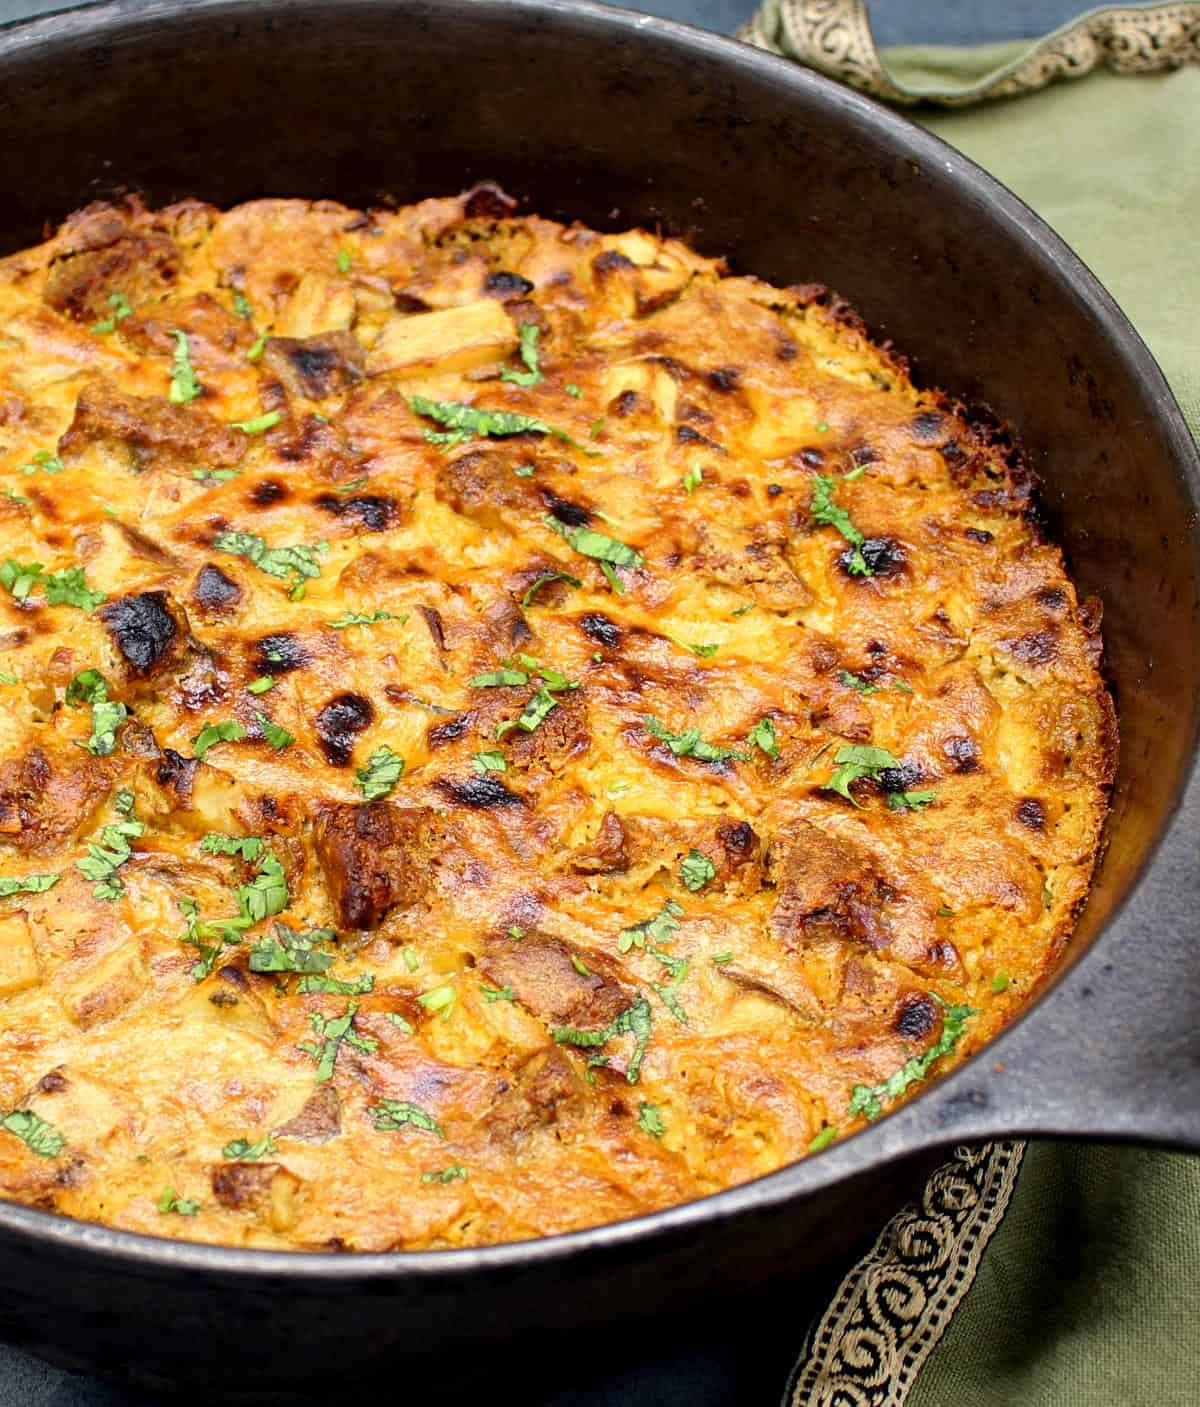 Front closeup of a vegan cheezy breakfast casserole in cast iron skillet with green napkin.